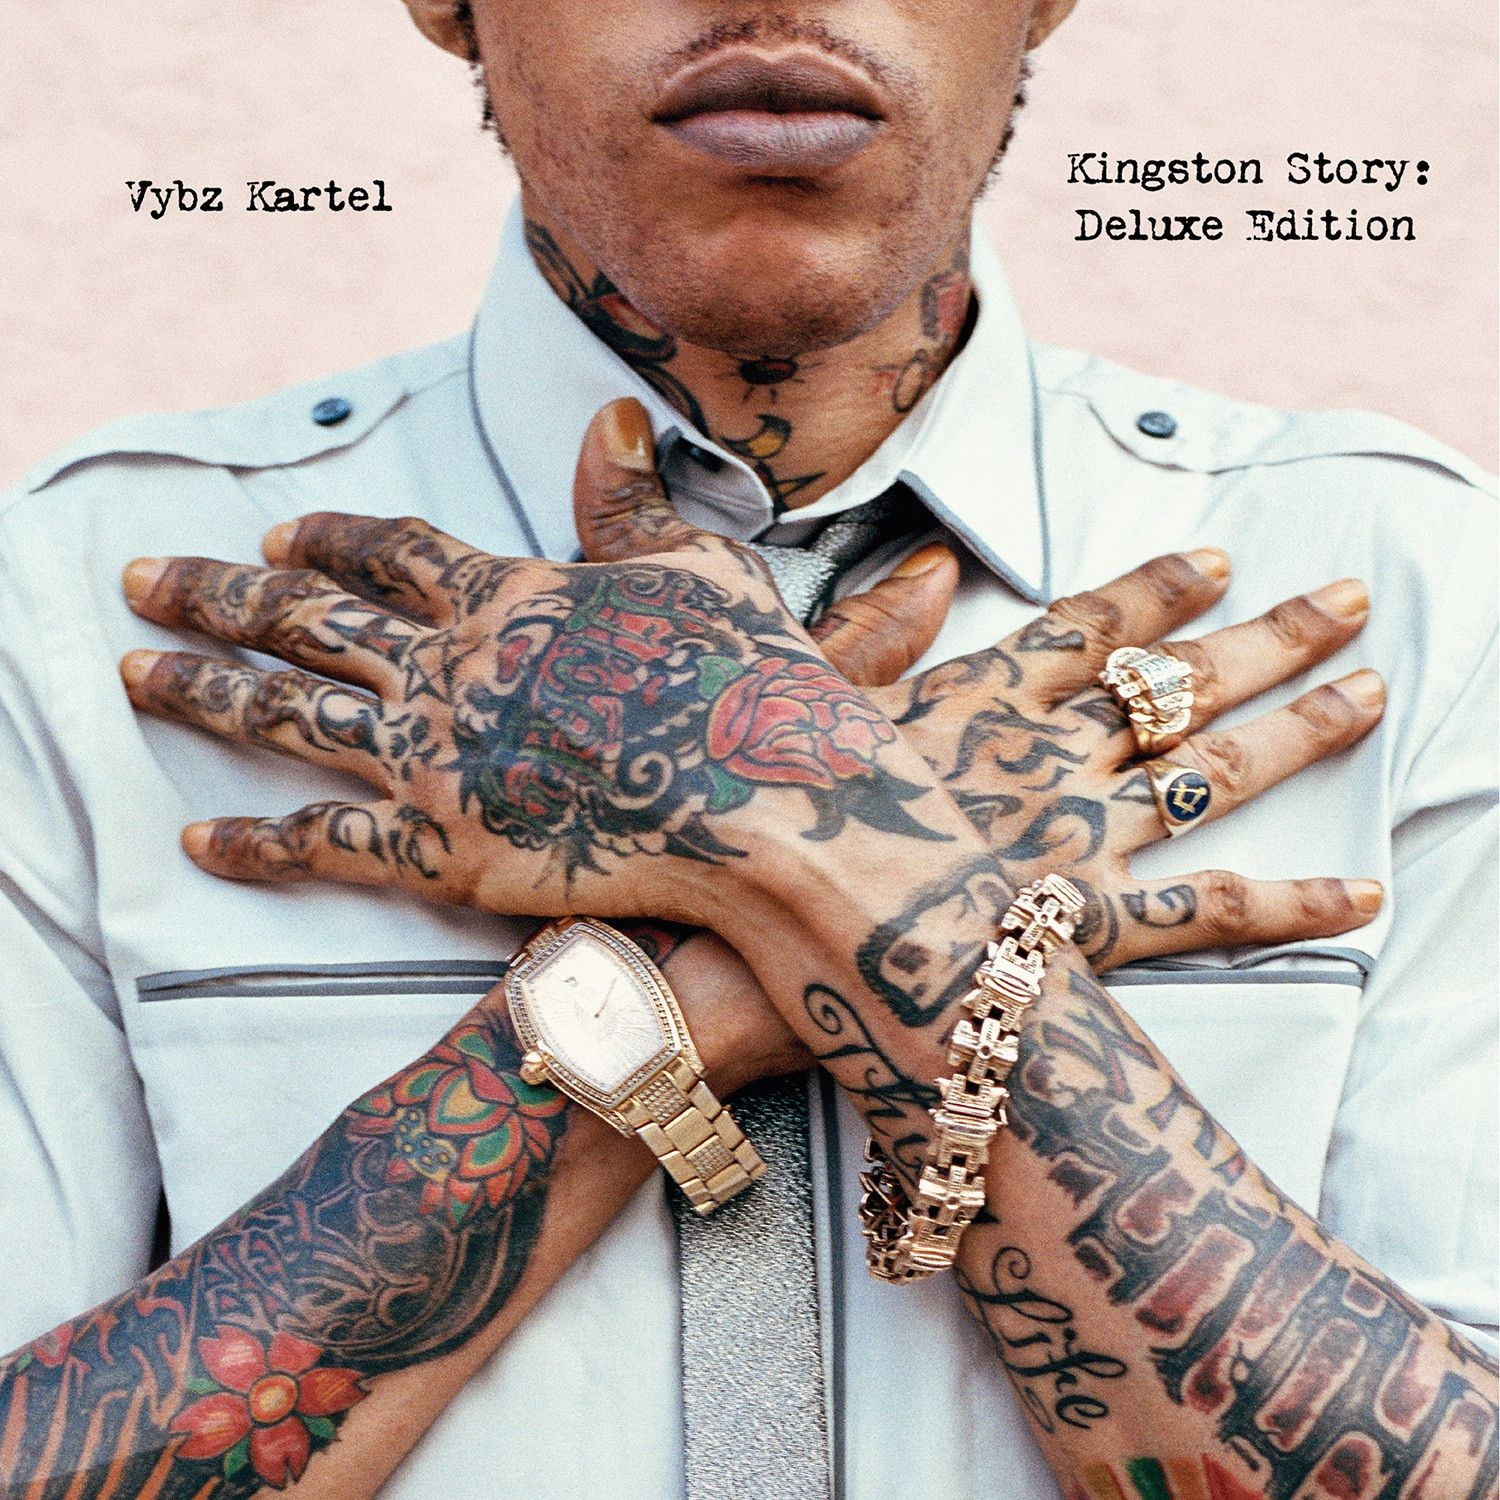 Vybz Kartel Doesnt Worry About Conforming To Expectations Hed Rather Break The Rules